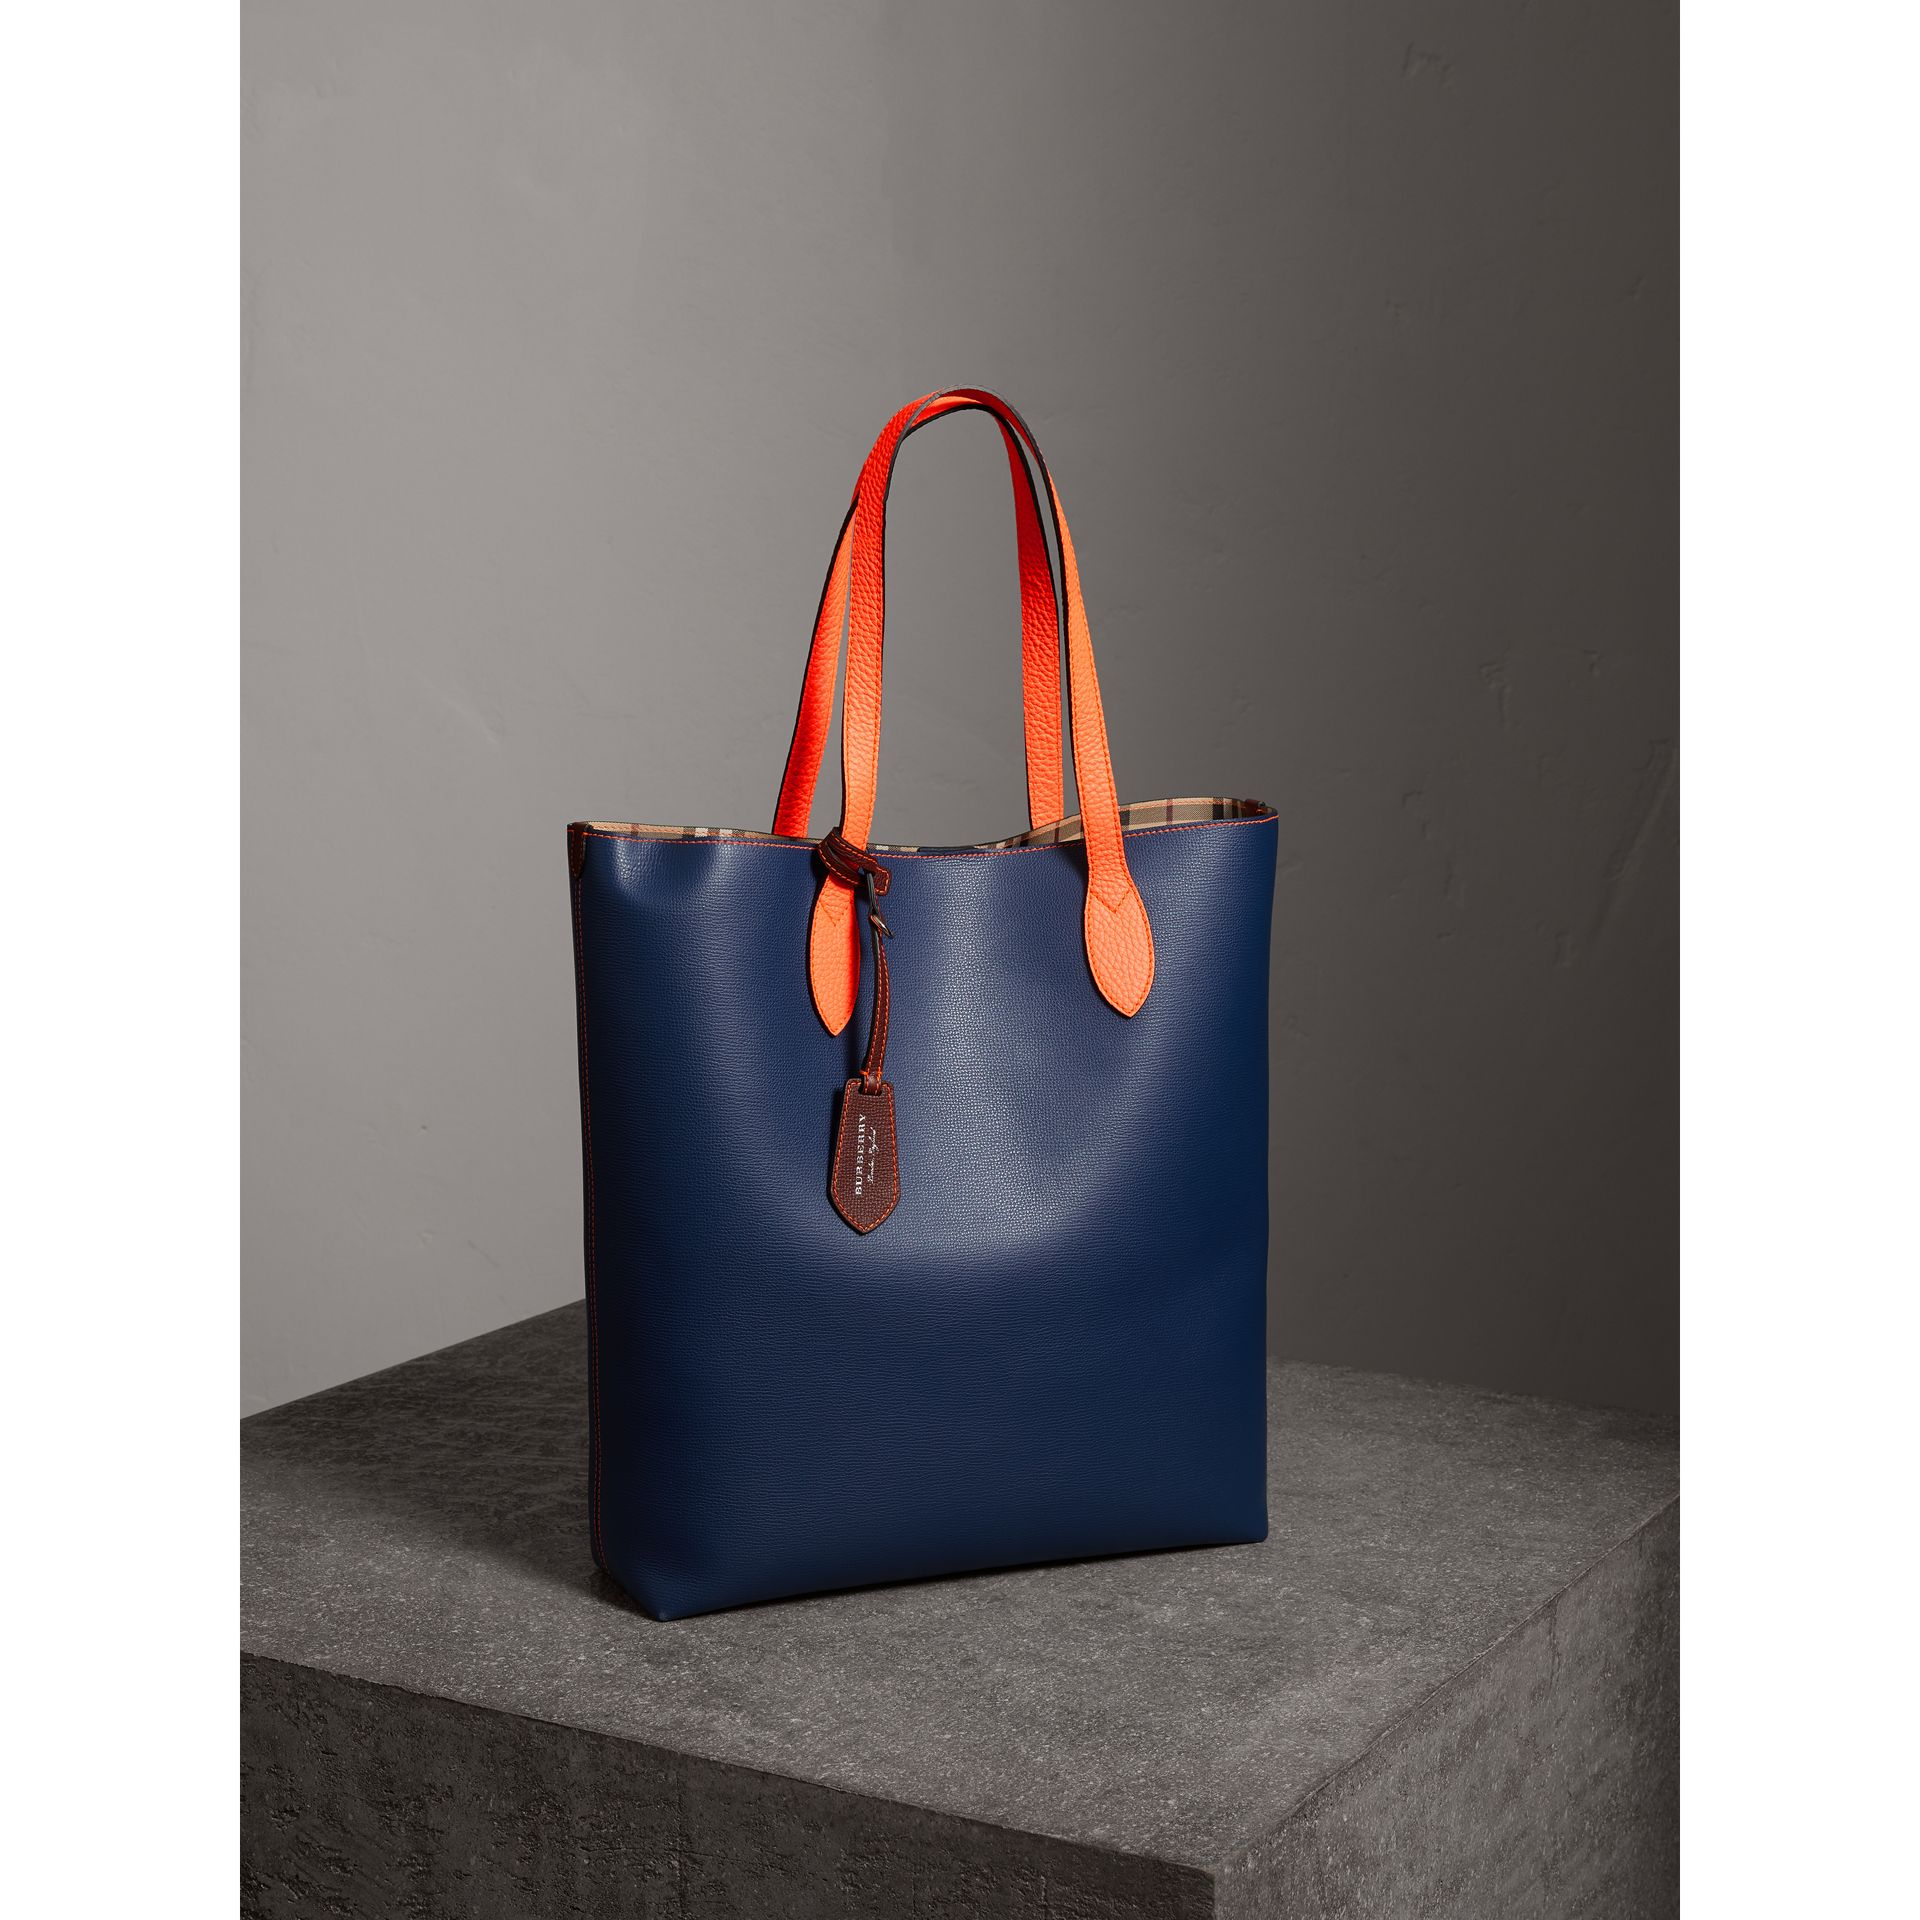 Medium Two-tone Coated Leather Tote in Dark Ultramarine | Burberry Australia - gallery image 5